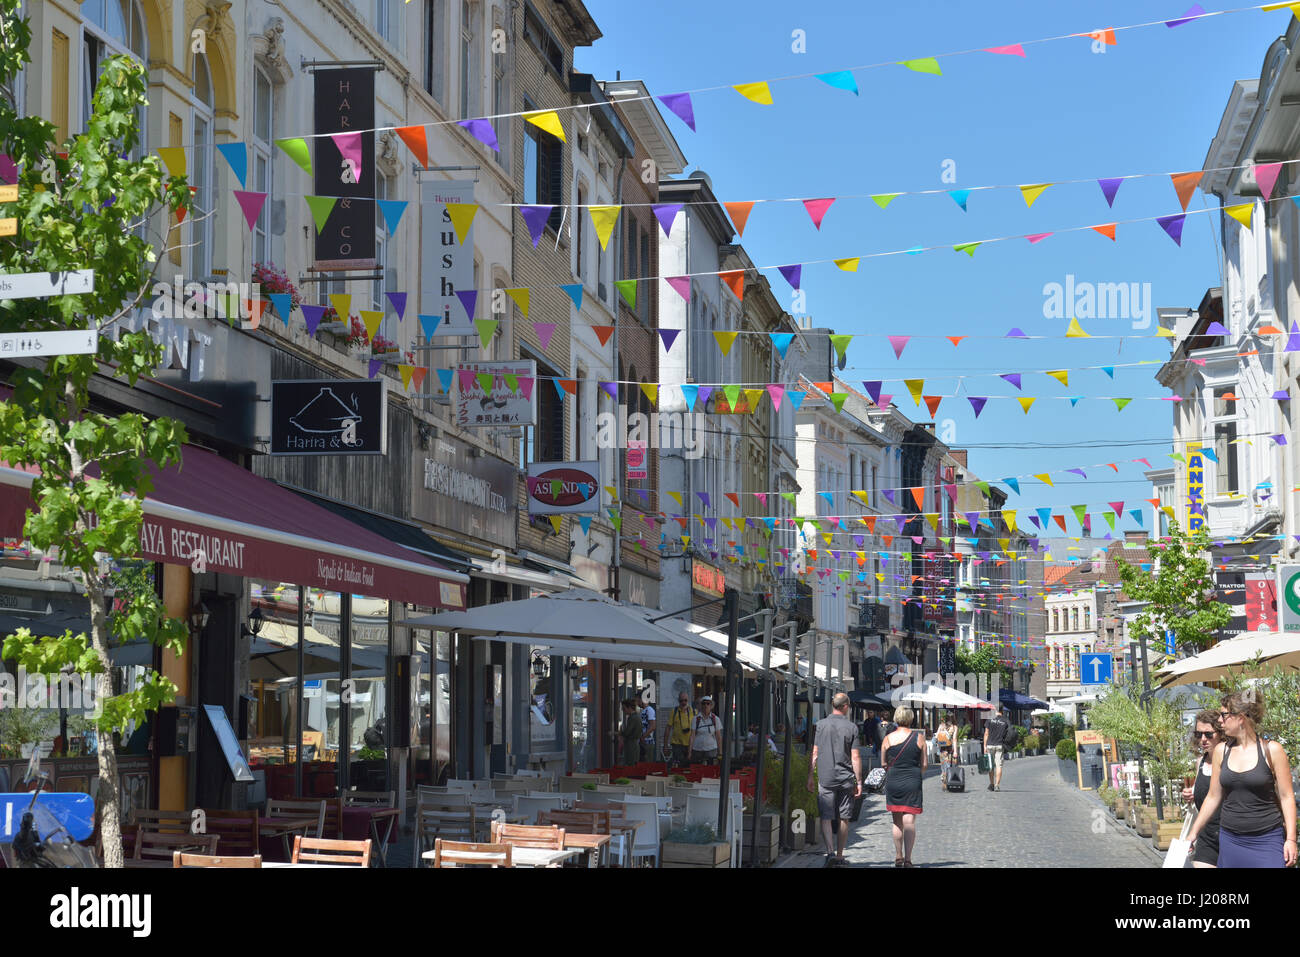 Shopping street in historical part of city decorated during Gentse Feesten in Ghent, Belgium on July 19, 2016 - Stock Image